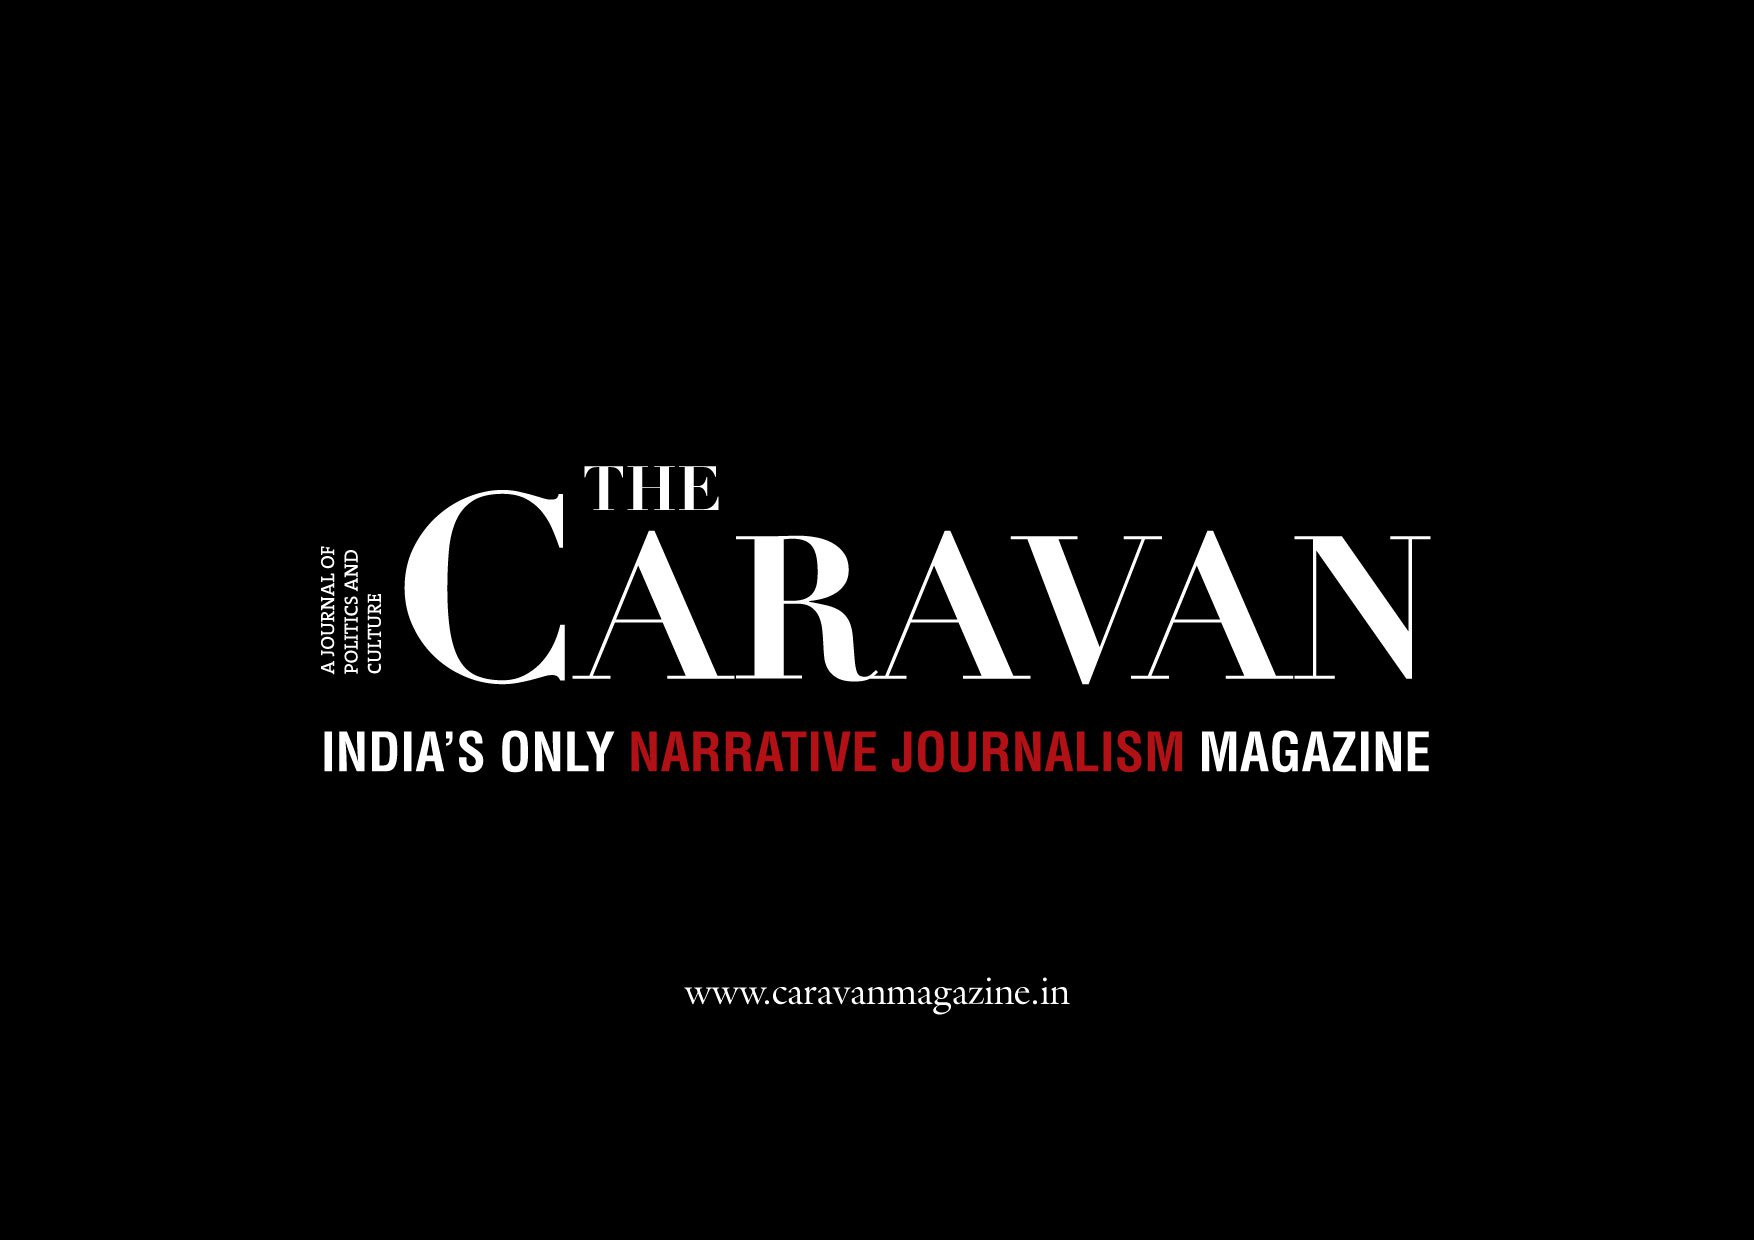 Caravan 2.0: Why a Defunct Leftist Magazine was Revived